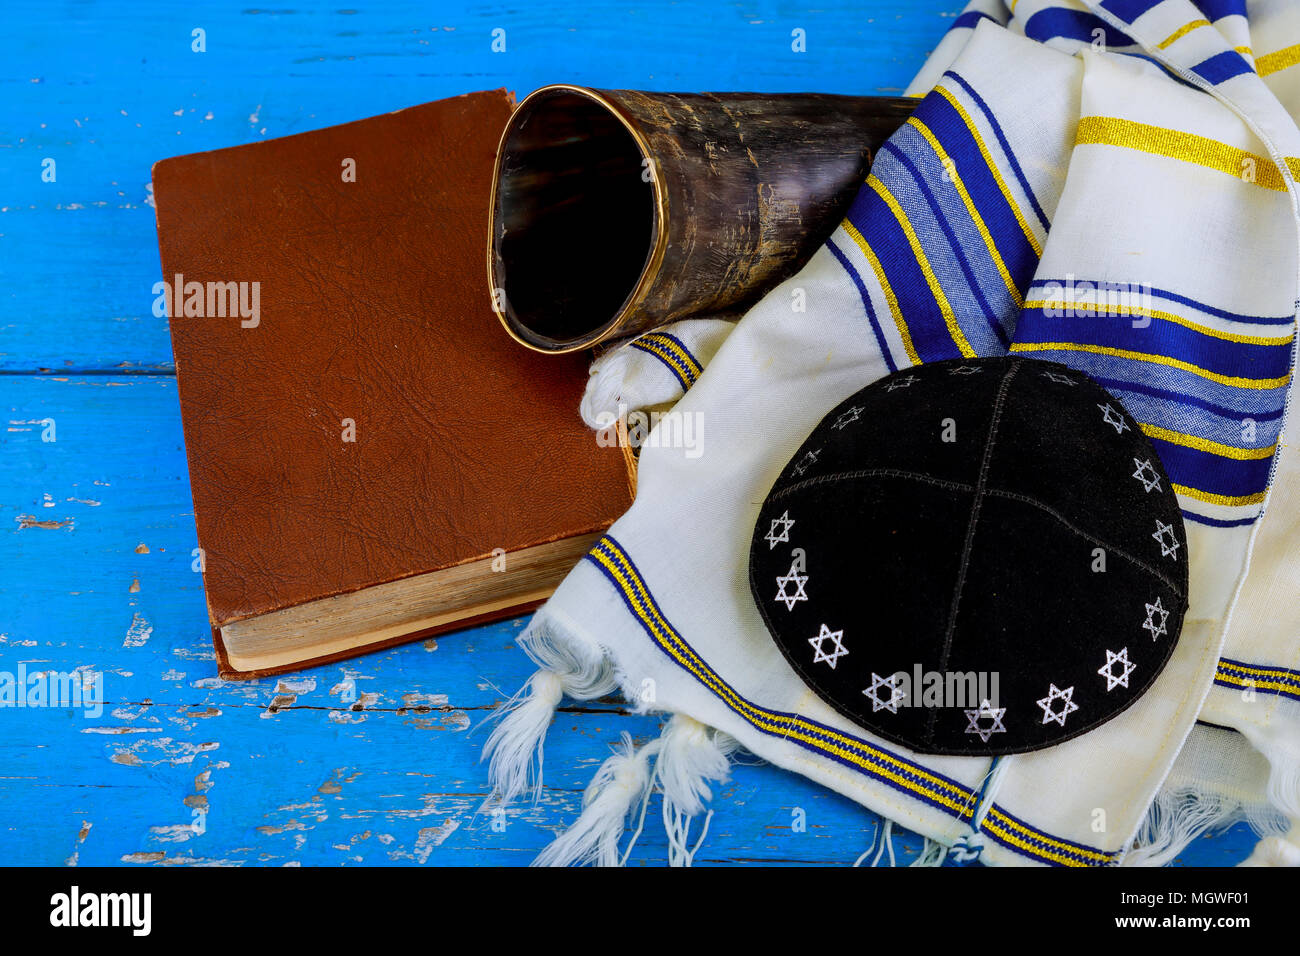 Prayer Shawl Tallit And Shofar Horn Jewish Religious Symbol Stock